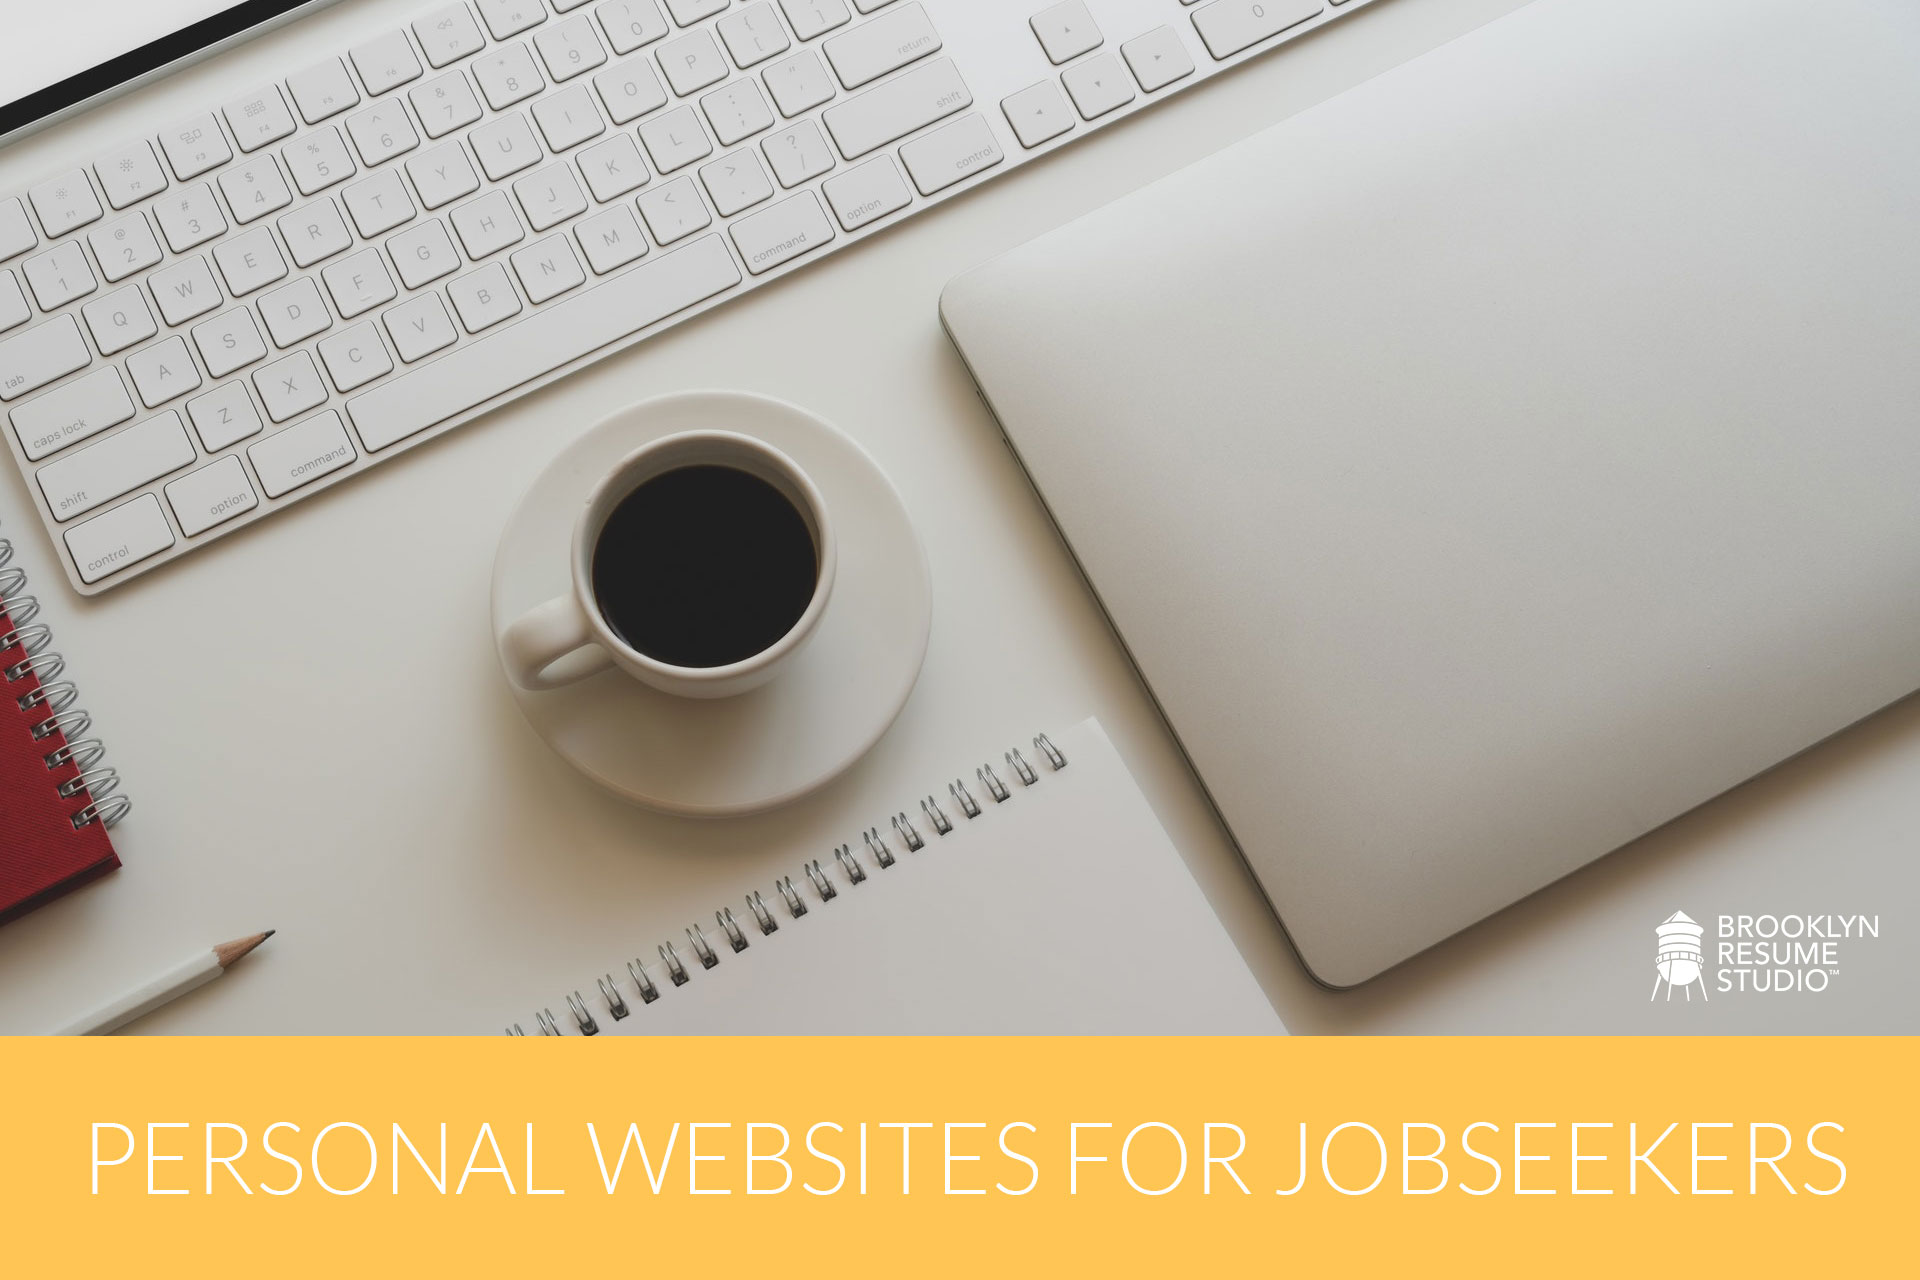 Personal Websites for Job Seekers